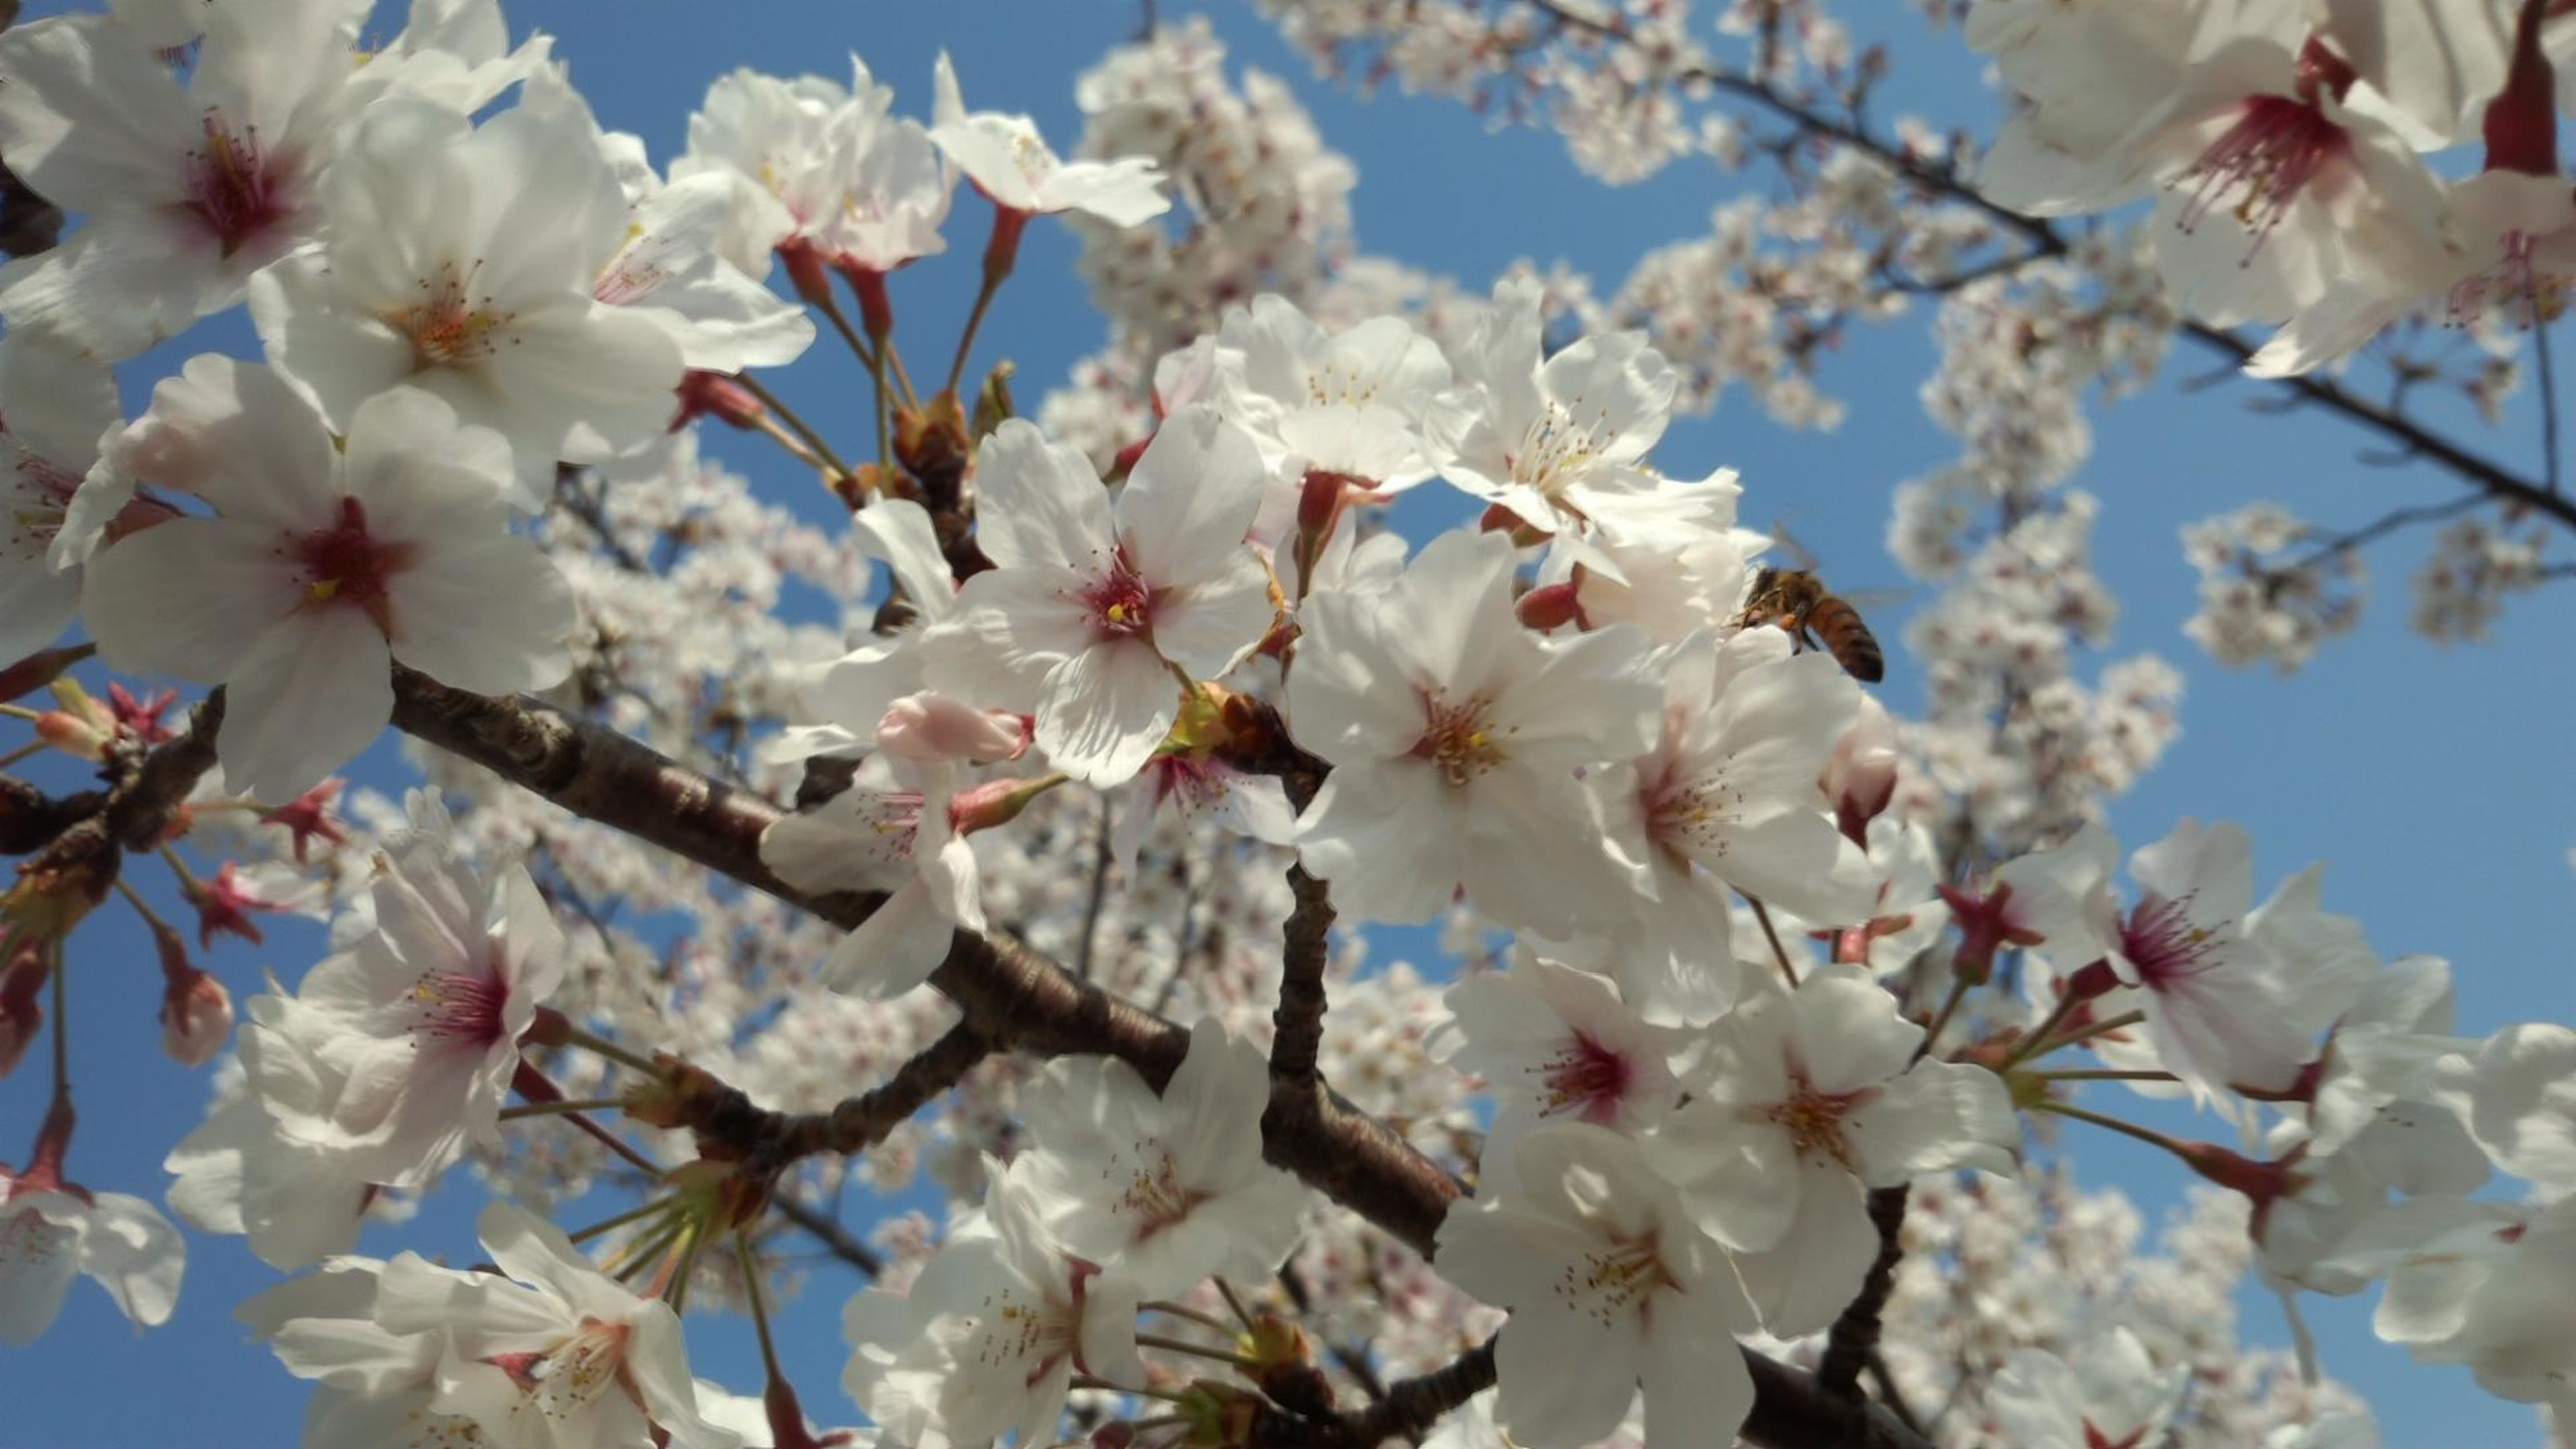 flower, cherry blossom, freshness, branch, fragility, tree, cherry tree, white color, blossom, low angle view, growth, beauty in nature, nature, petal, fruit tree, apple blossom, in bloom, orchard, blooming, springtime